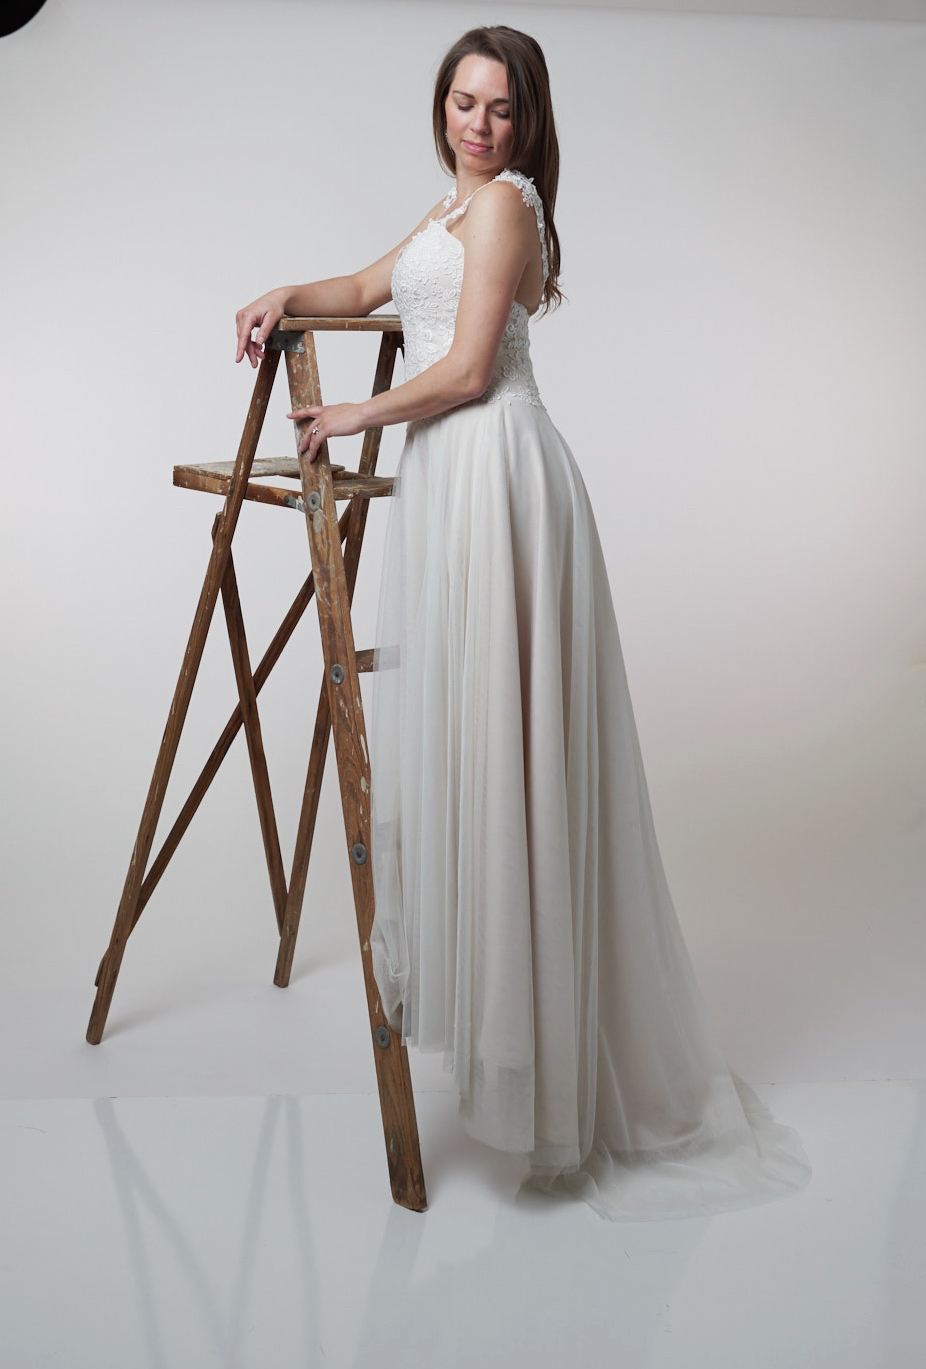 Proudly Made in USA Bridal Gowns by Wedding Gallery | bridal gowns ...